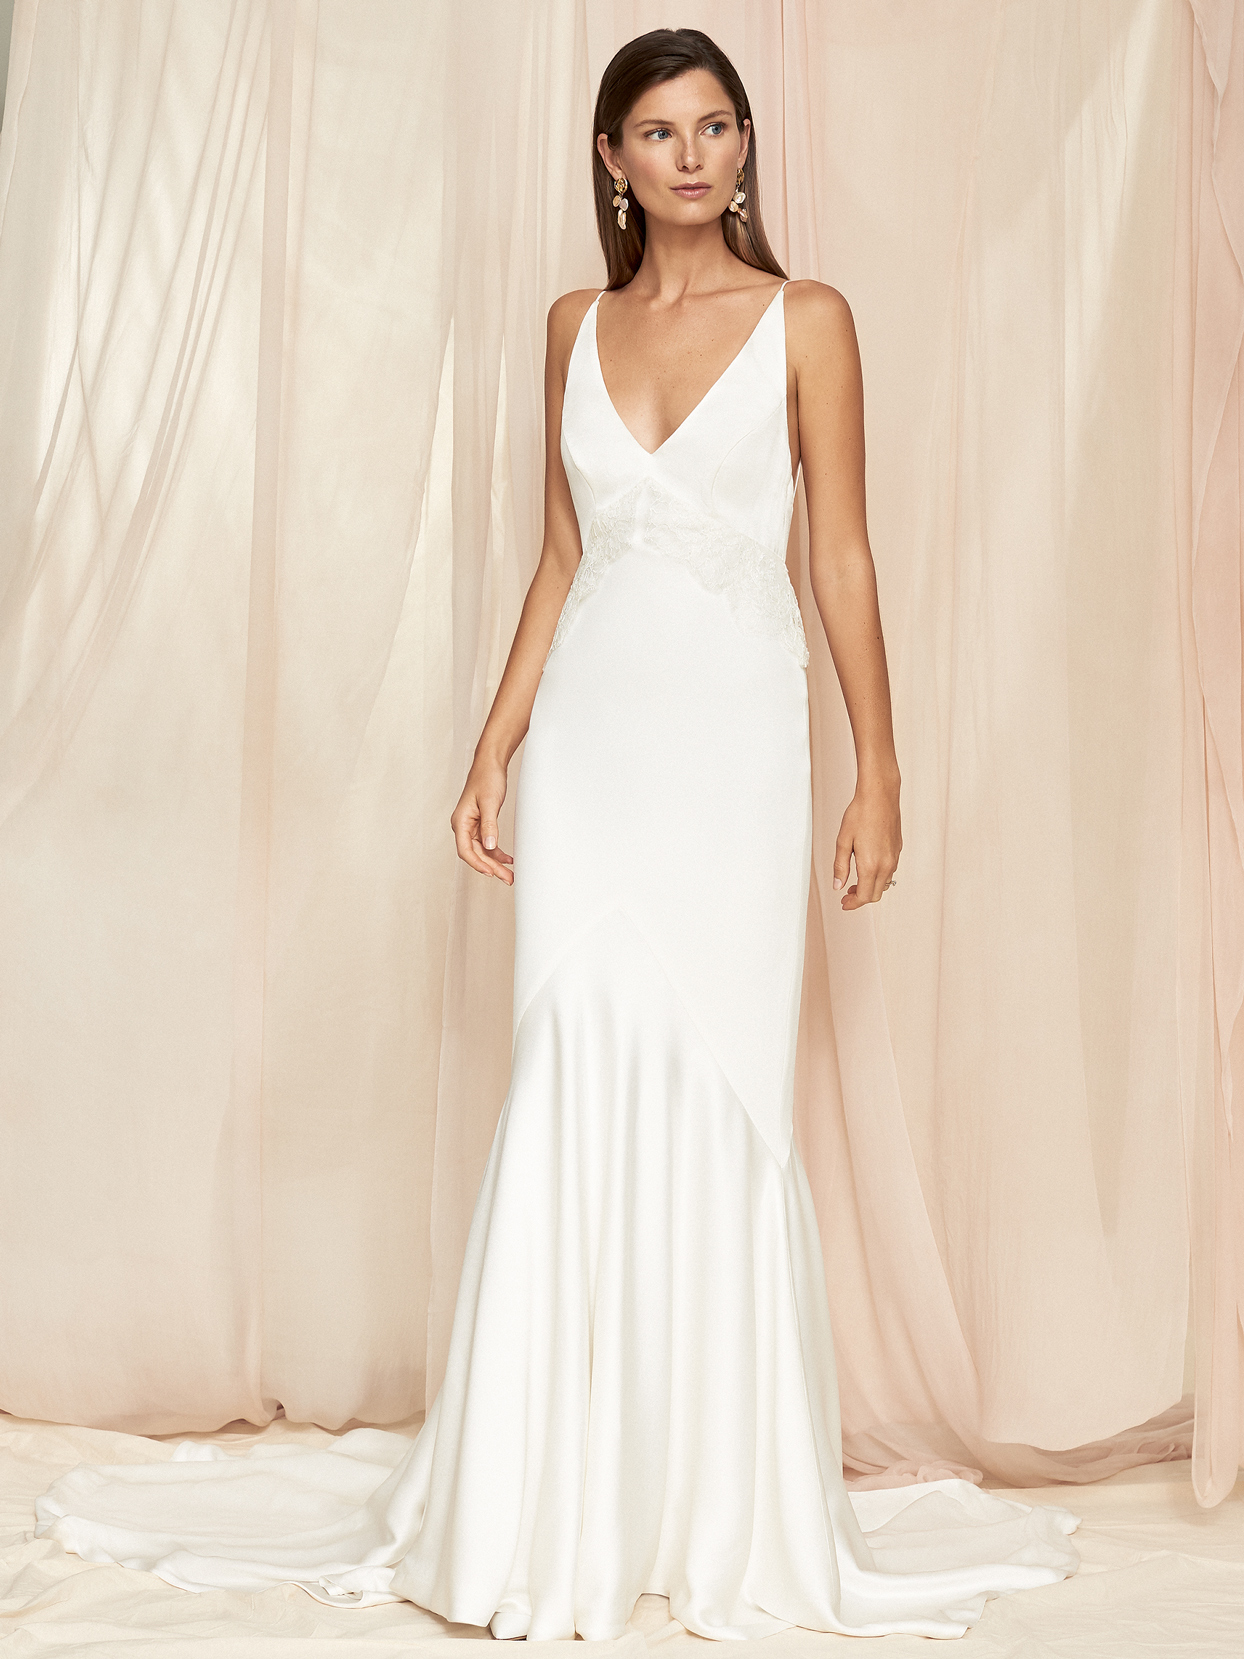 Savannah Miller sleeveless v-neck sheath train wedding dress fall 2020